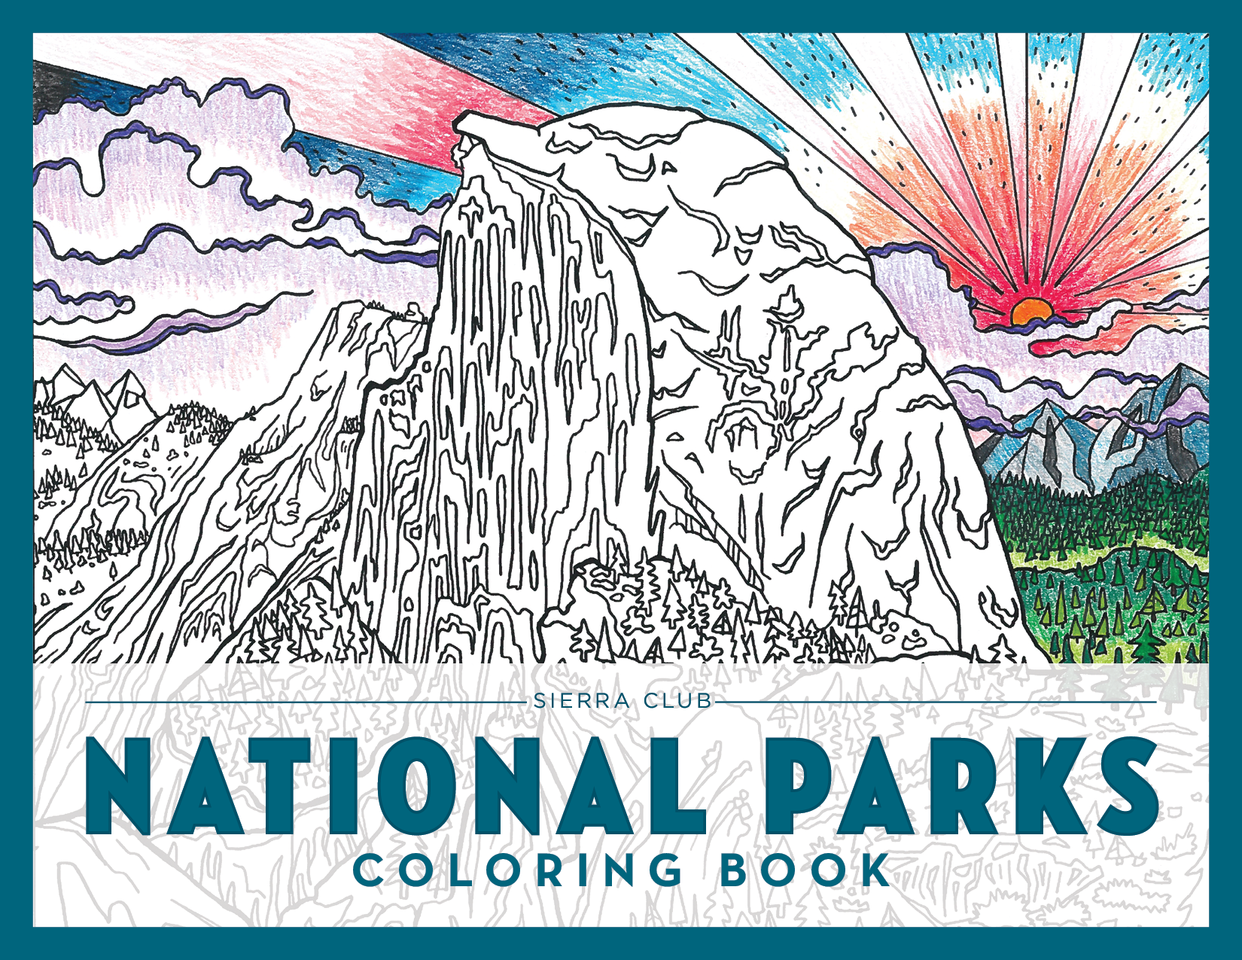 The Sierra Club National Parks Coloring Book